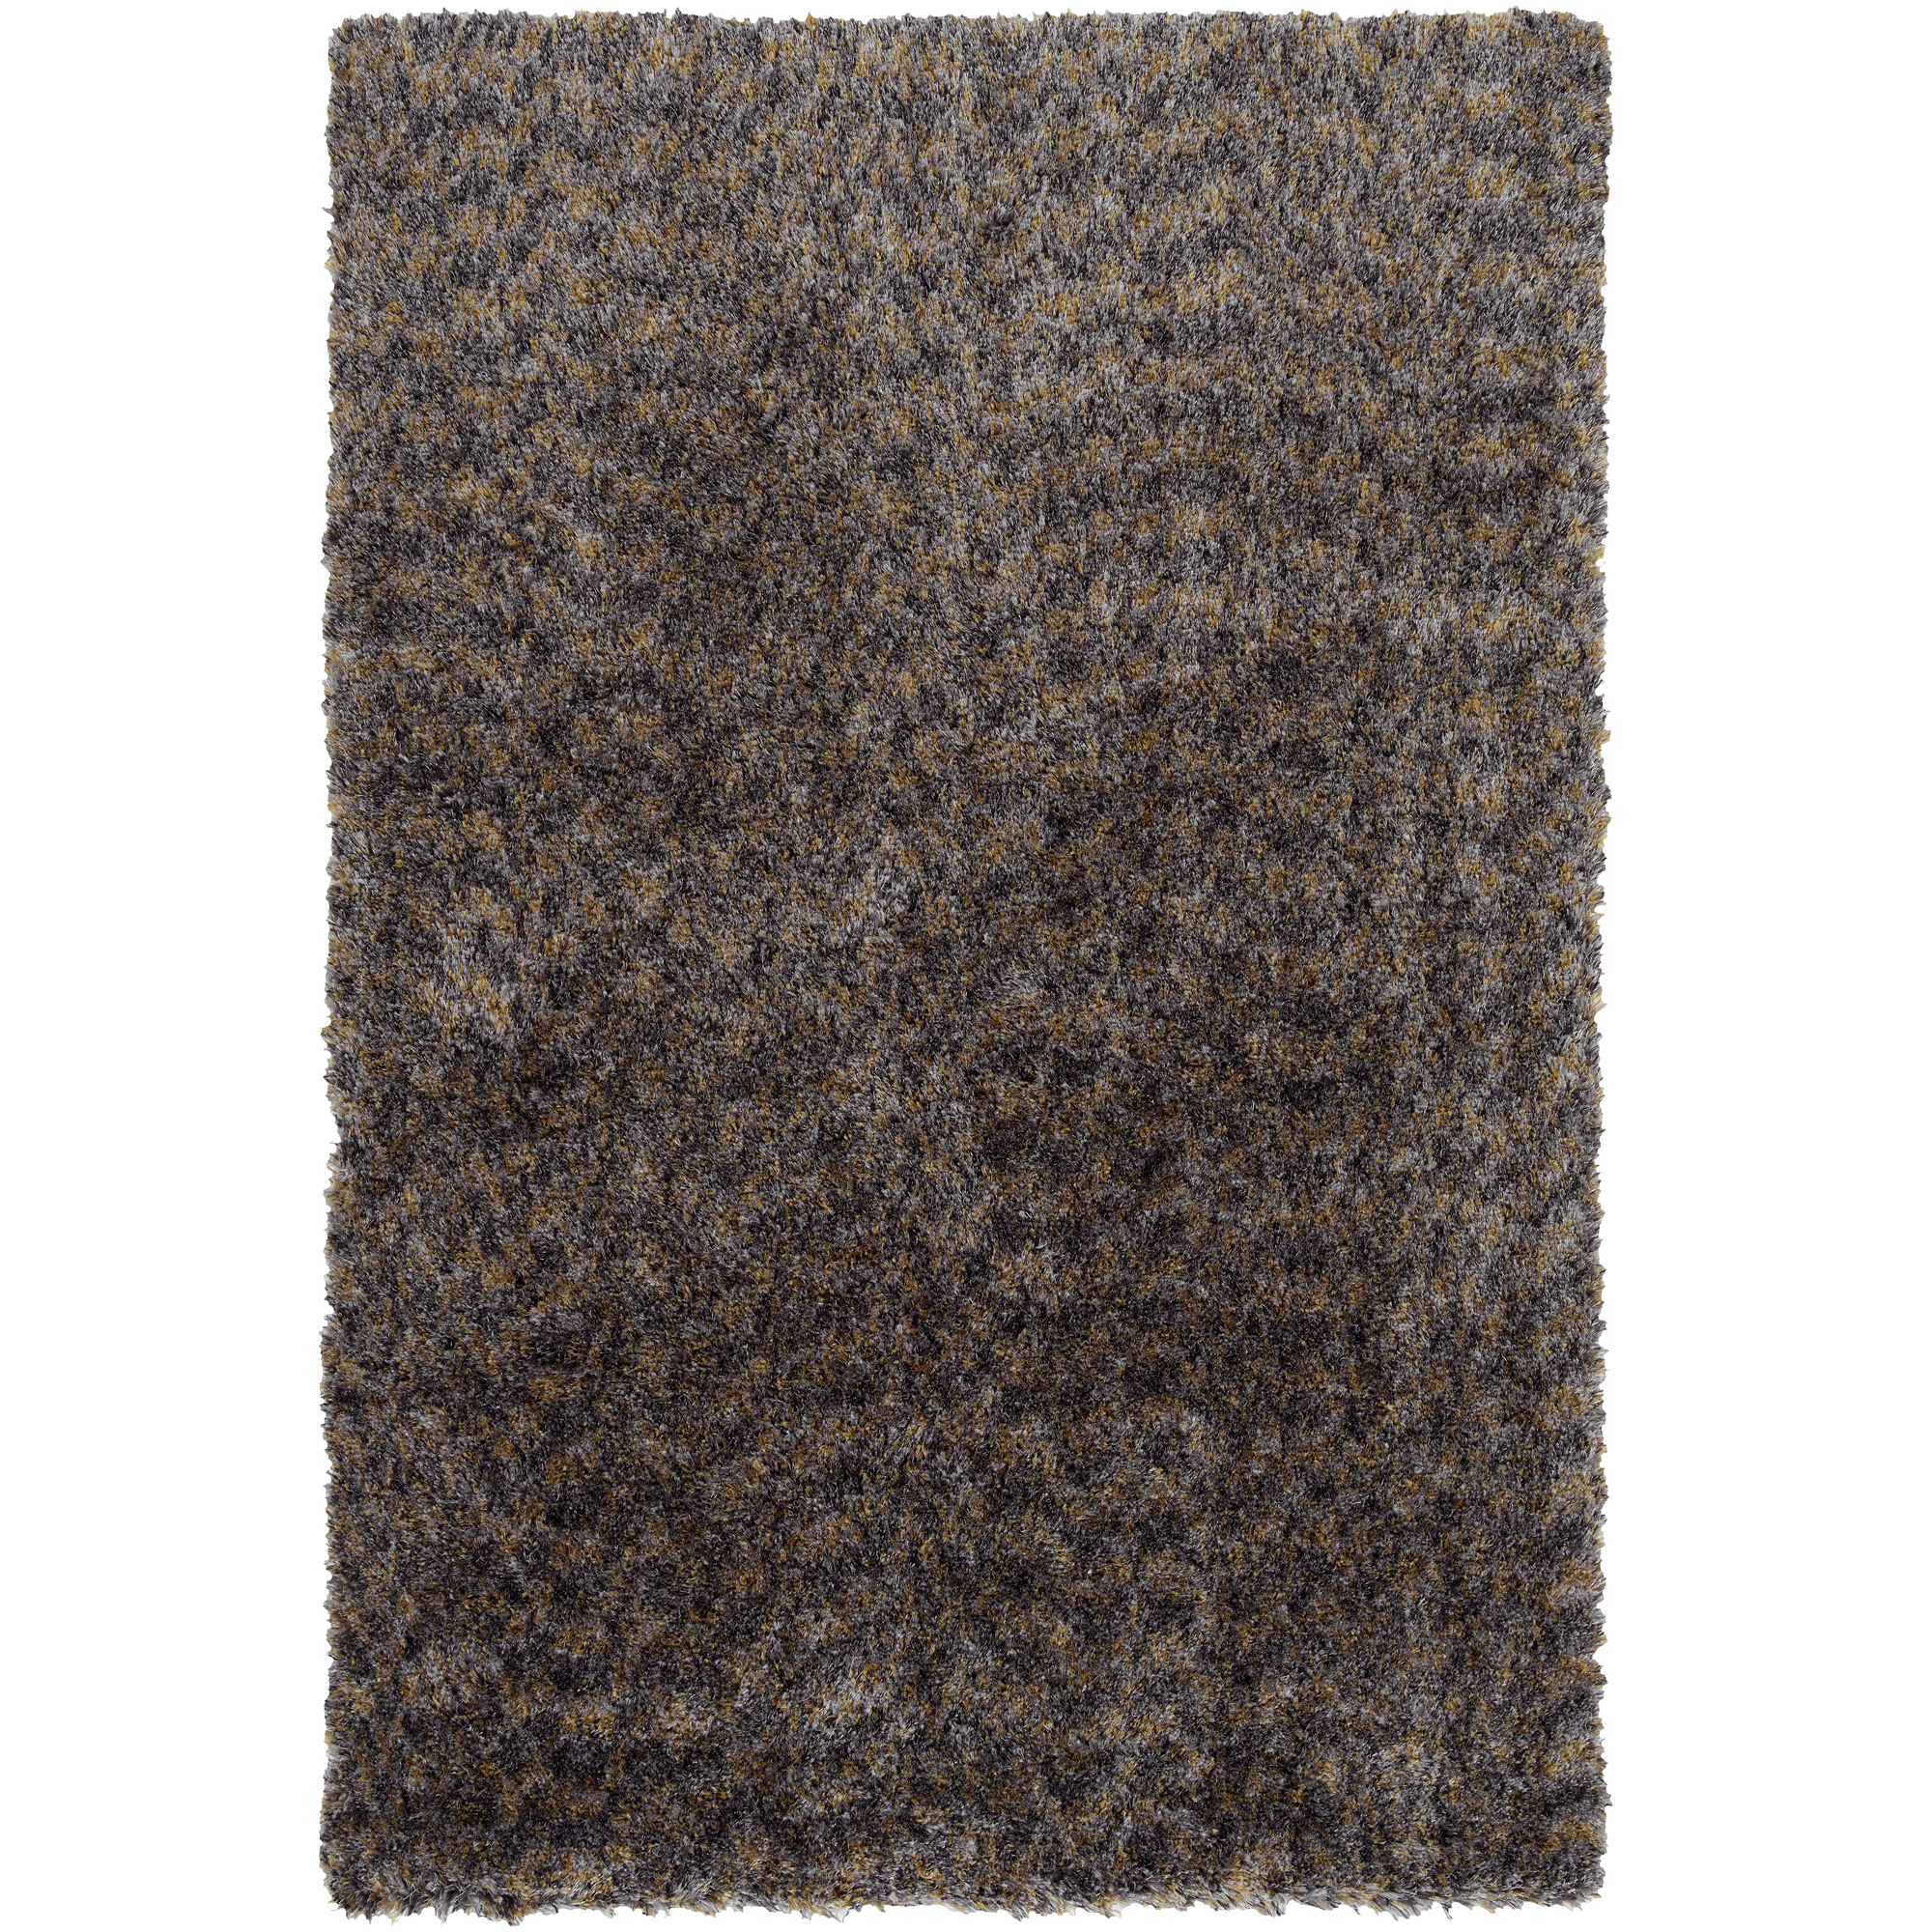 Dalyn Rug | Cabot Gray 8x10 Area Rug